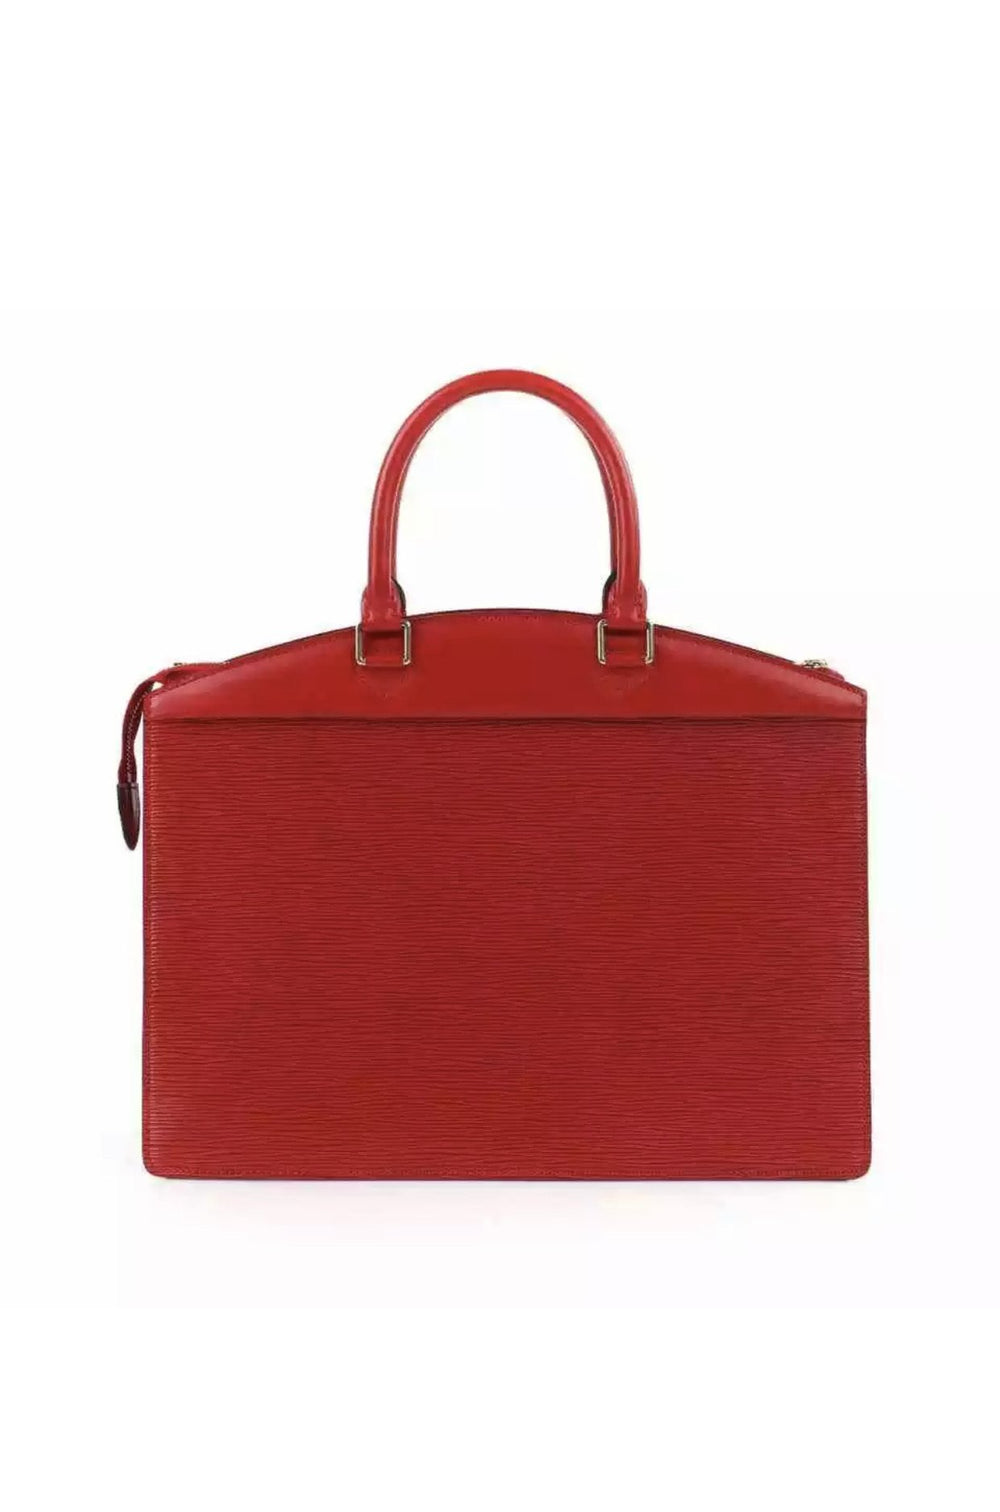 Vintage Red Epi Riviera Bag